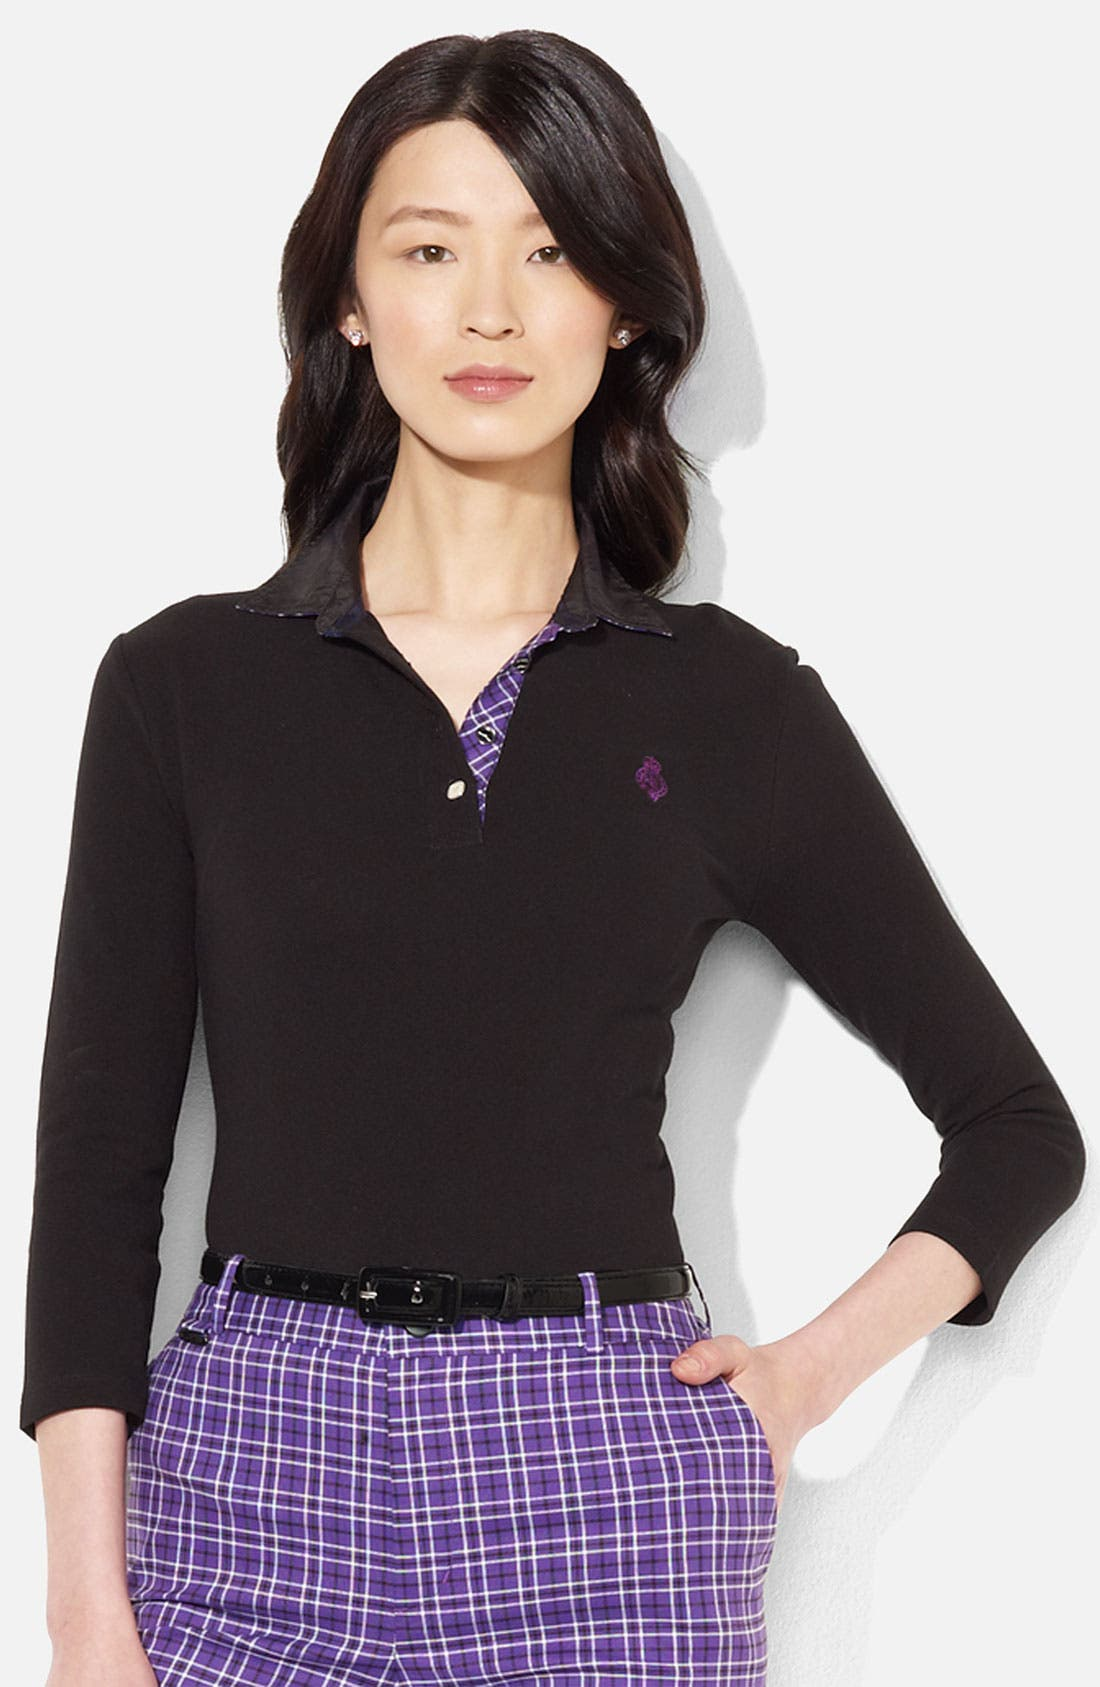 Alternate Image 1 Selected - Lauren Ralph Lauren Plaid Trim Polo (Petite) (Online Exclusive)